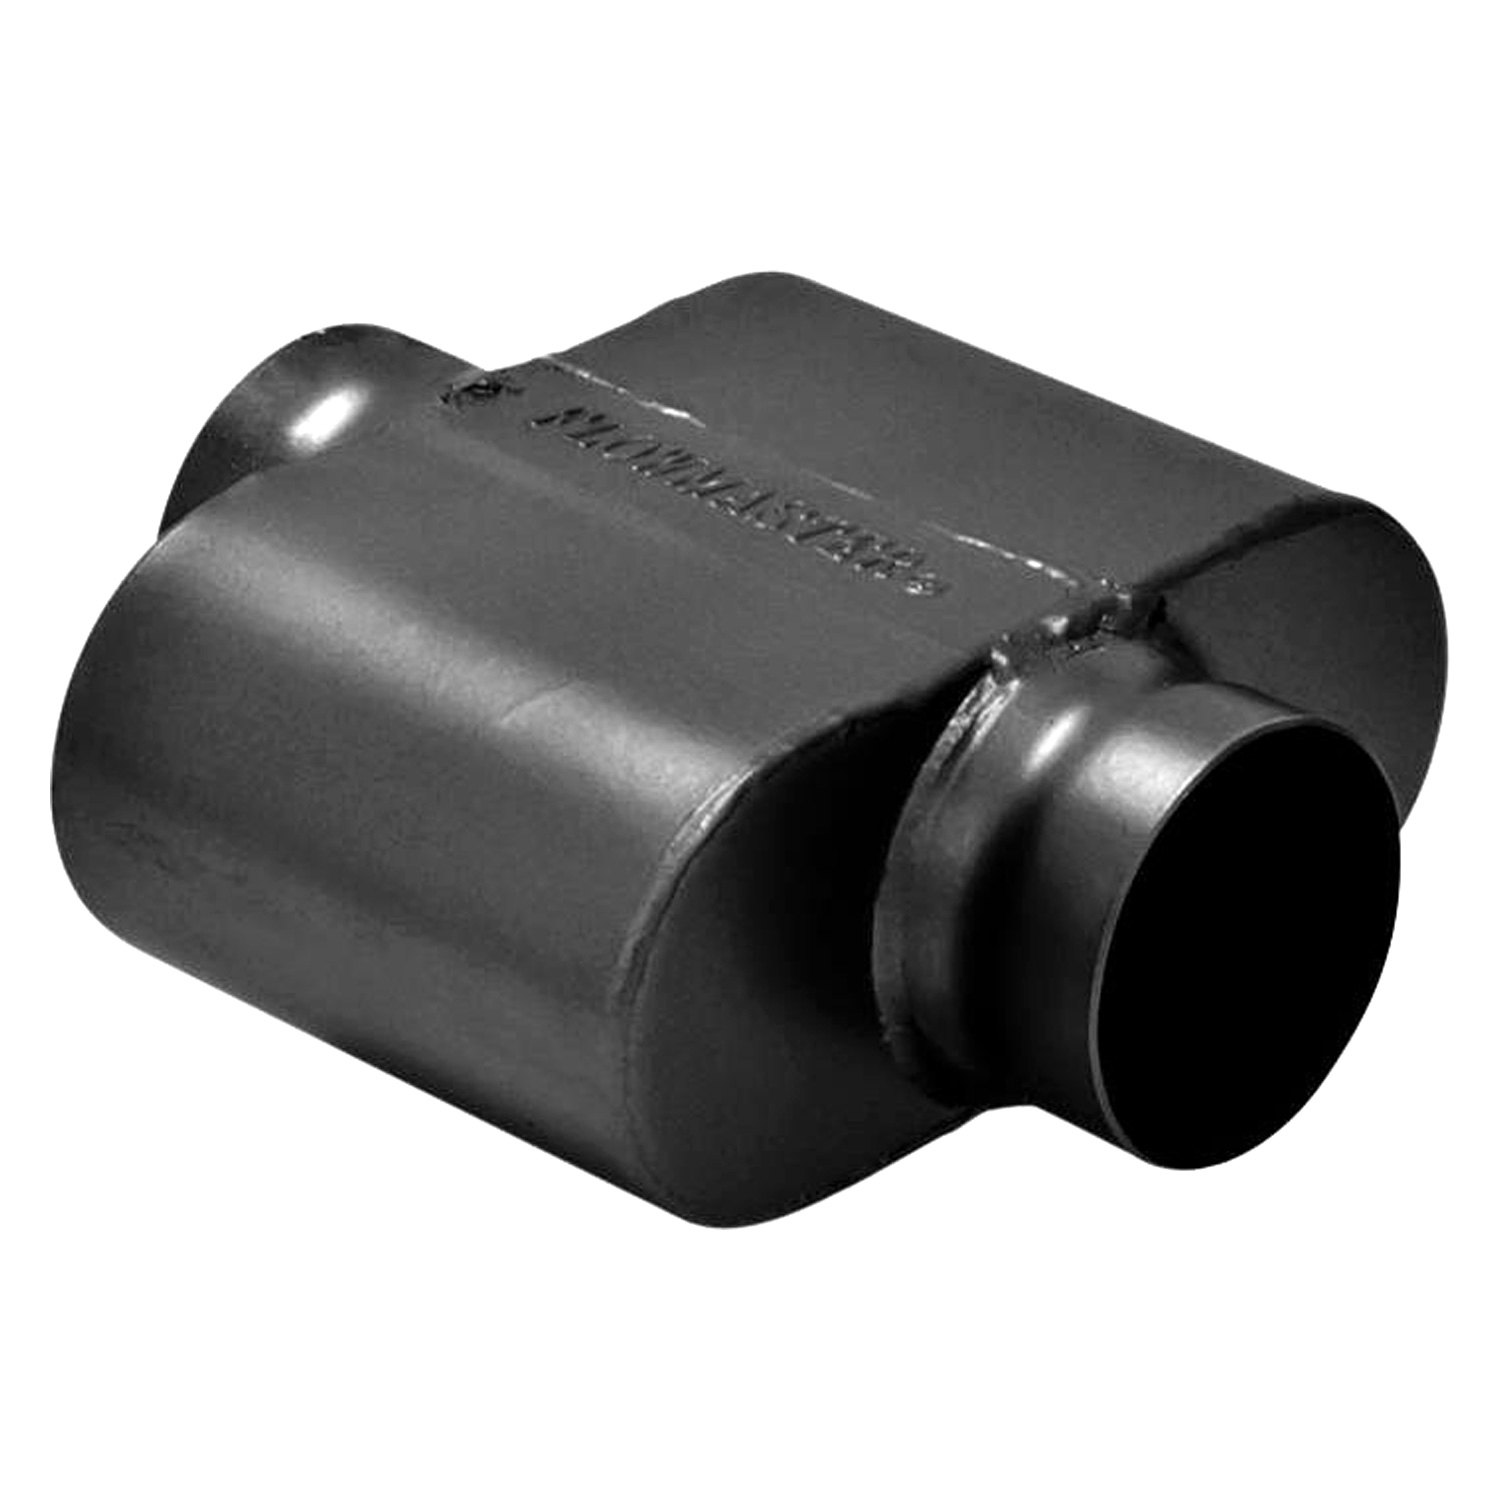 "PER-101 Single 1 One Chamber Race Muffler 3"" Offset Inlet & Outlet ..."